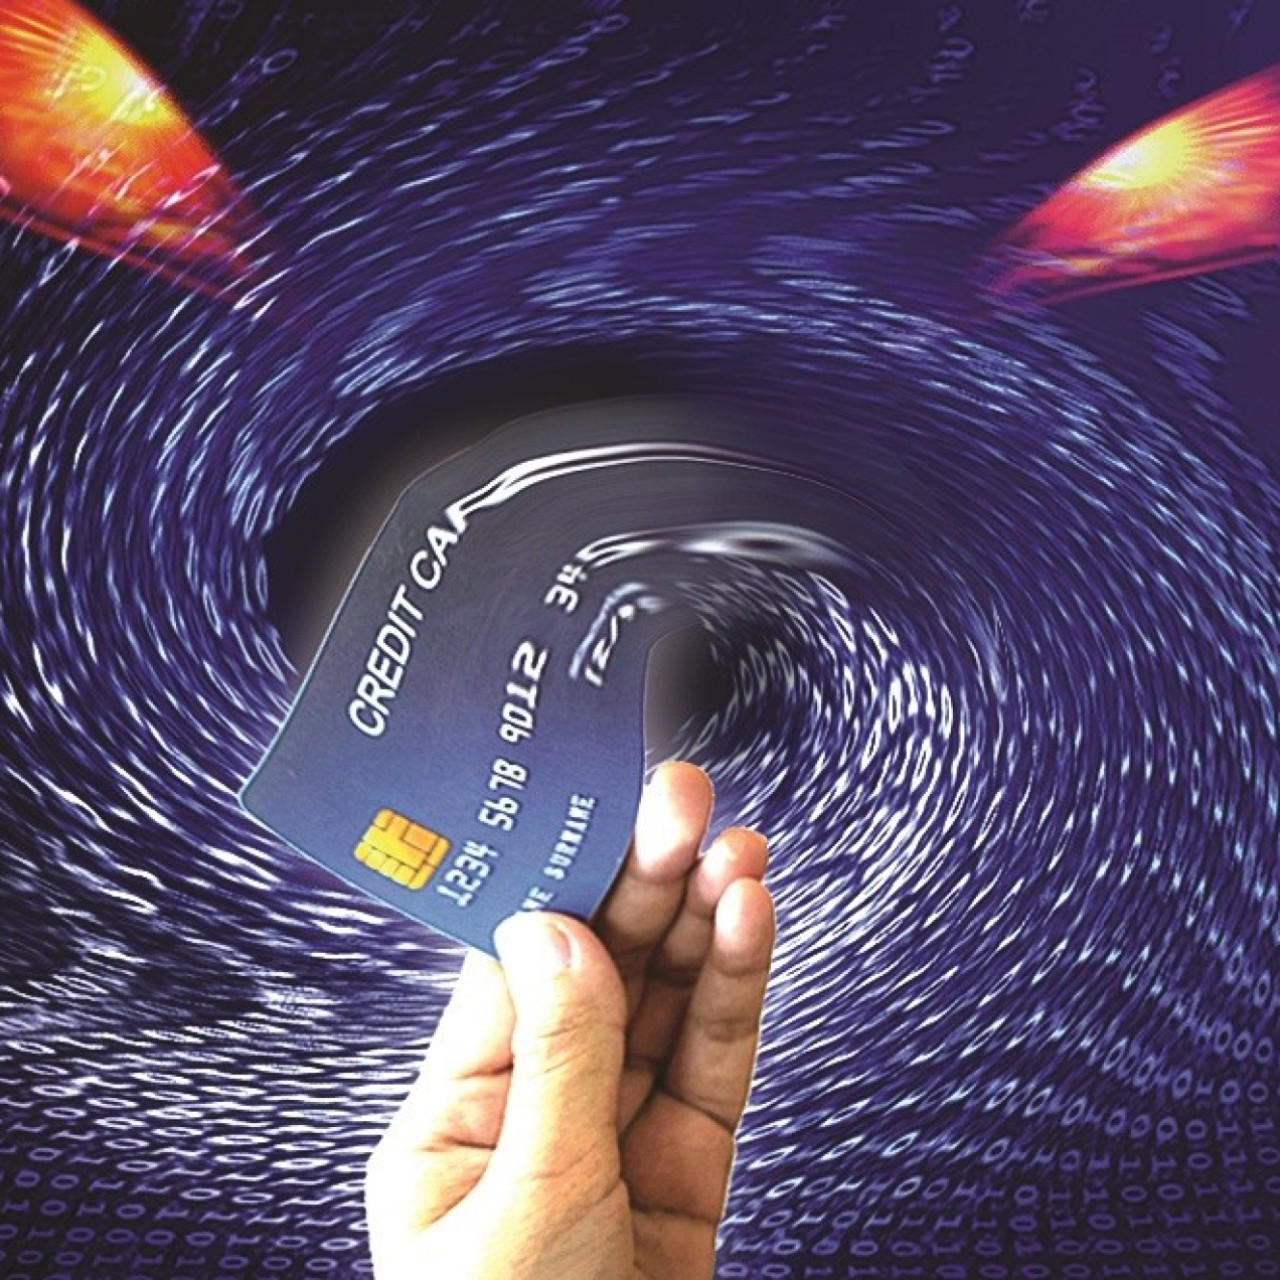 Cash vs contactless: in coin-free world, one man struggles